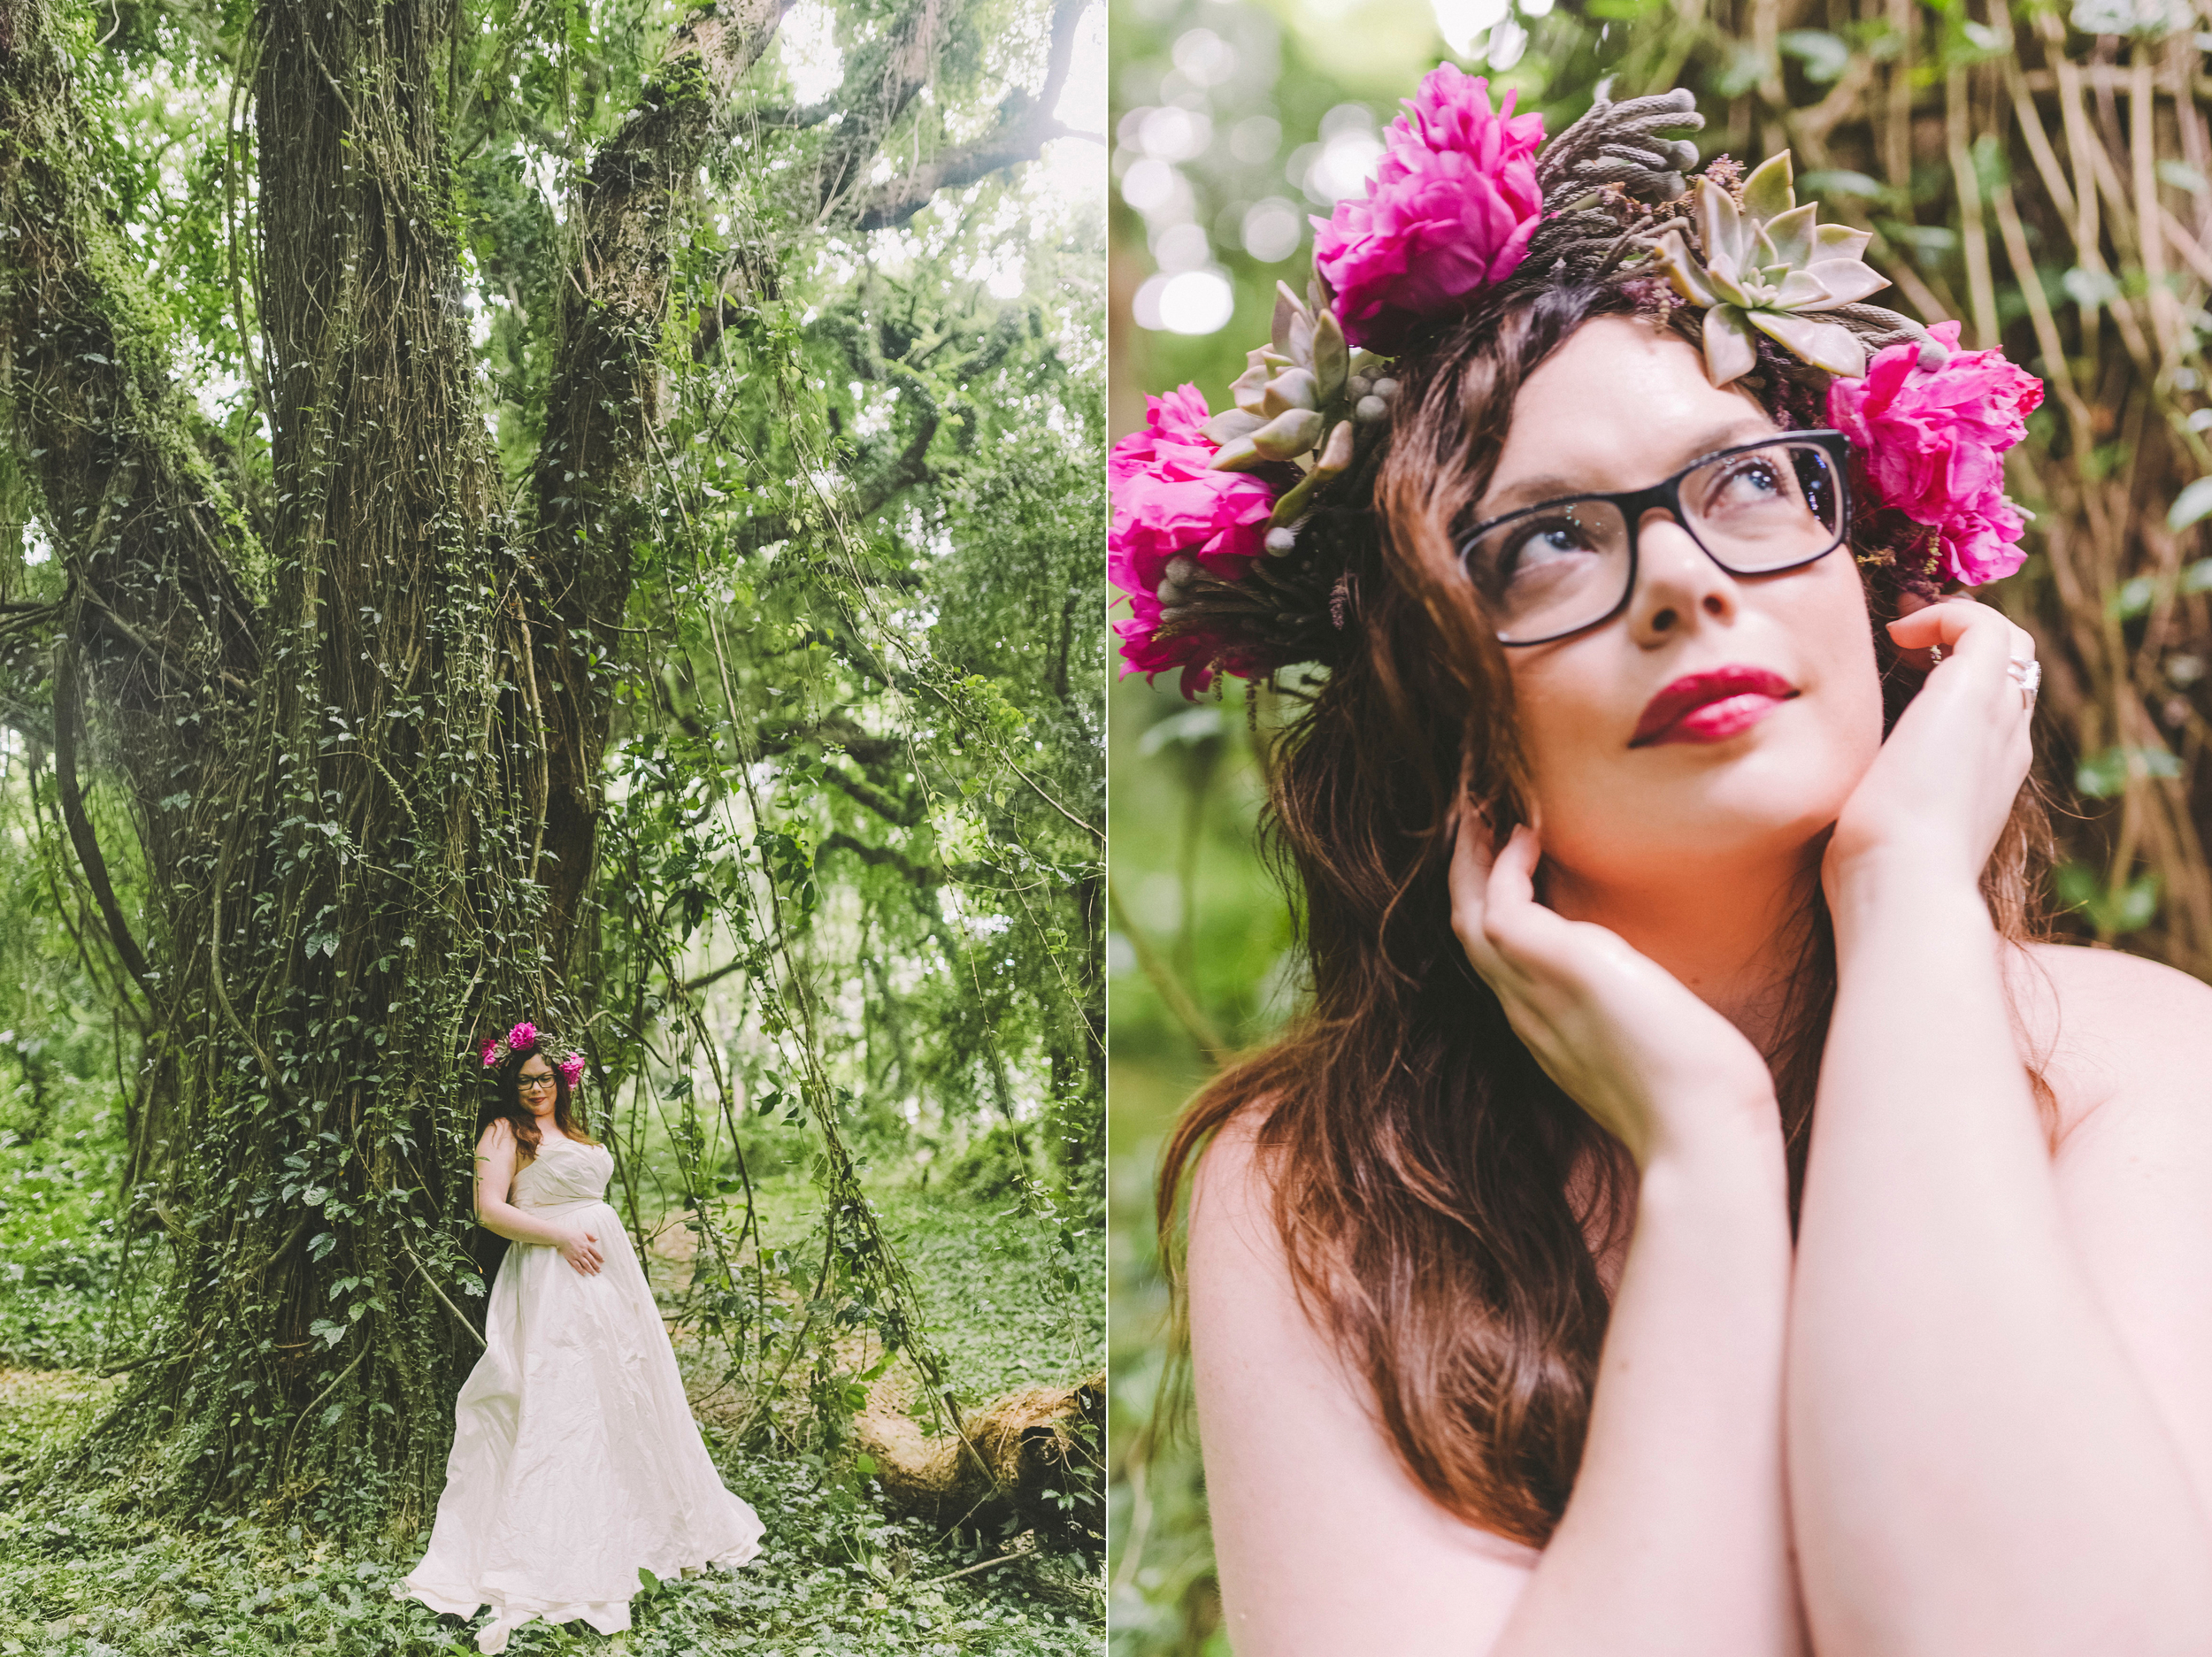 angie-diaz-photography-maui-elopement-87.jpg